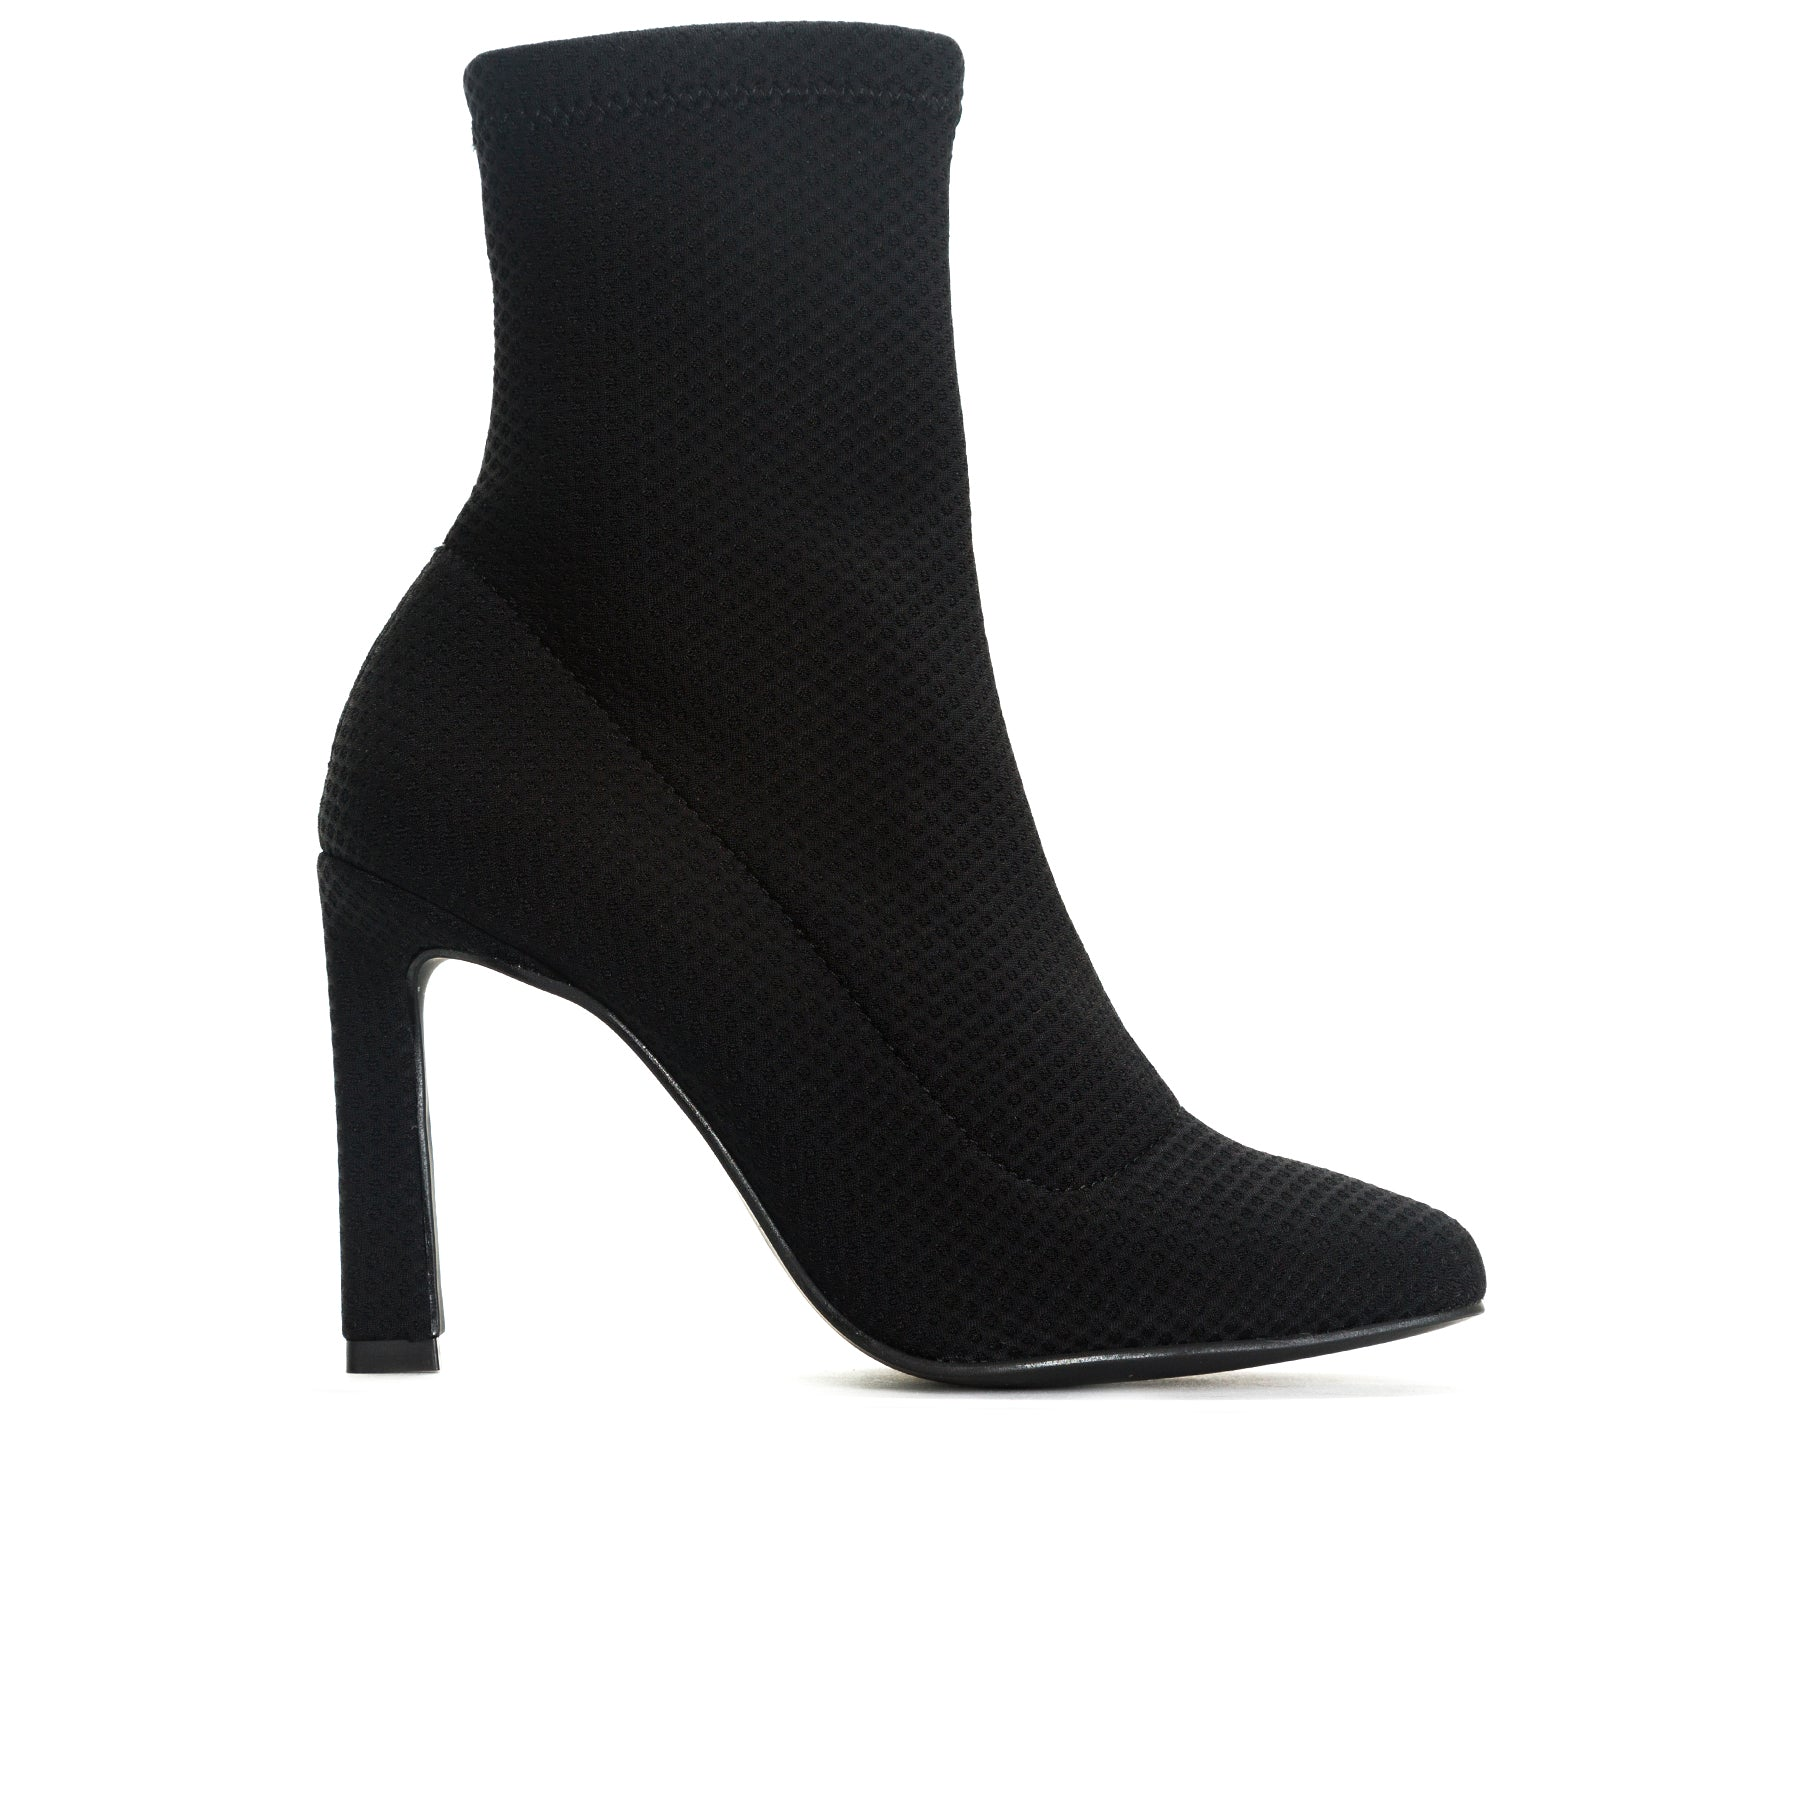 Dafni Black Fabric Ankle Boots